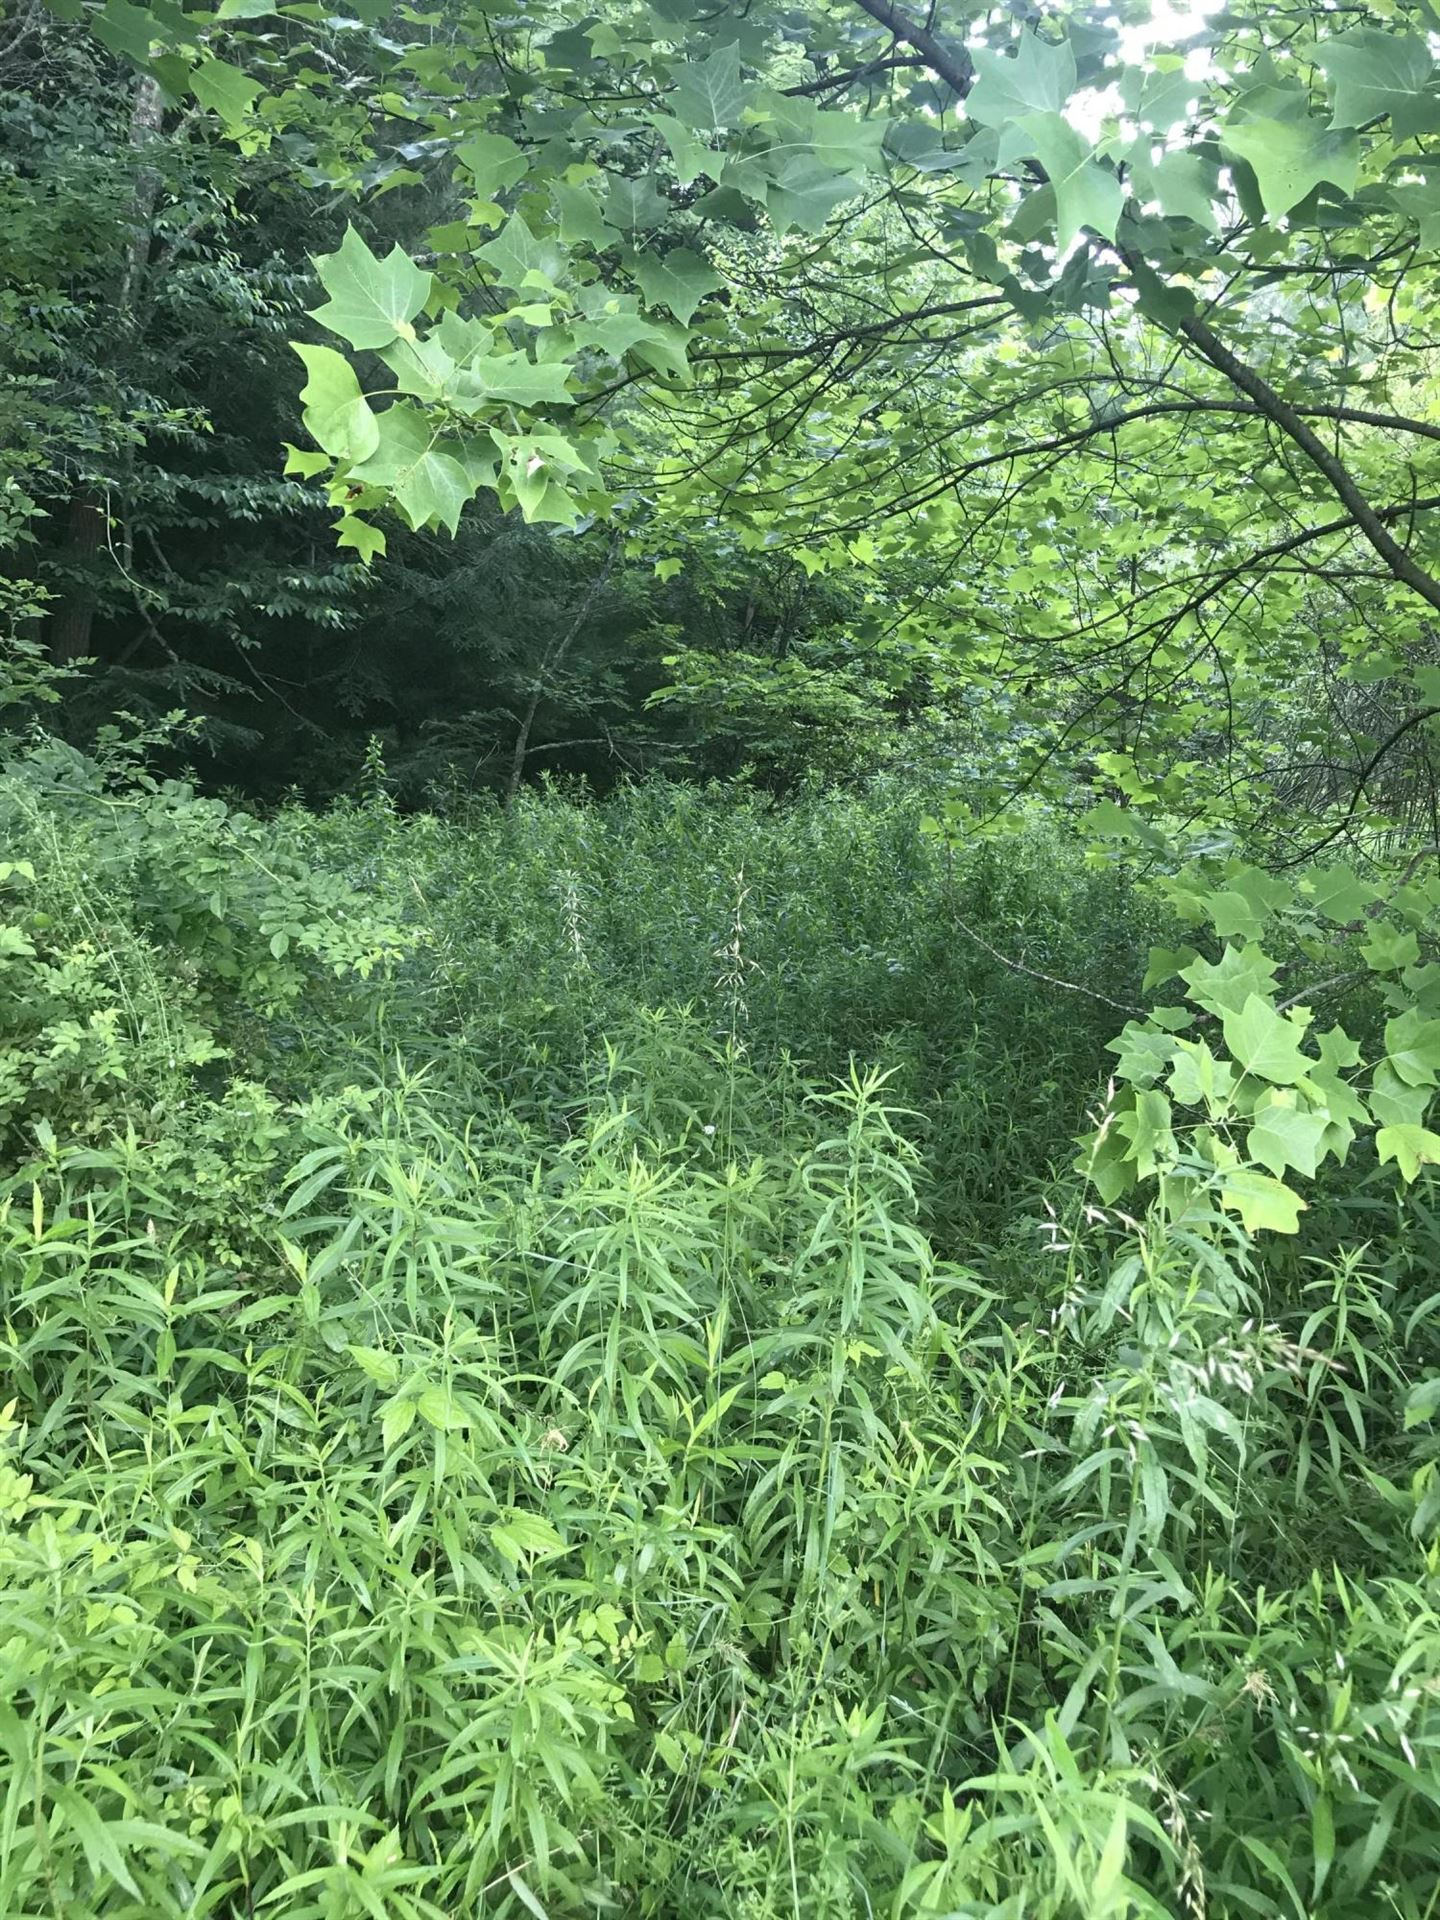 Photo of 0-0 South Hwy 421, Trade, TN 37691 (MLS # 9924569)